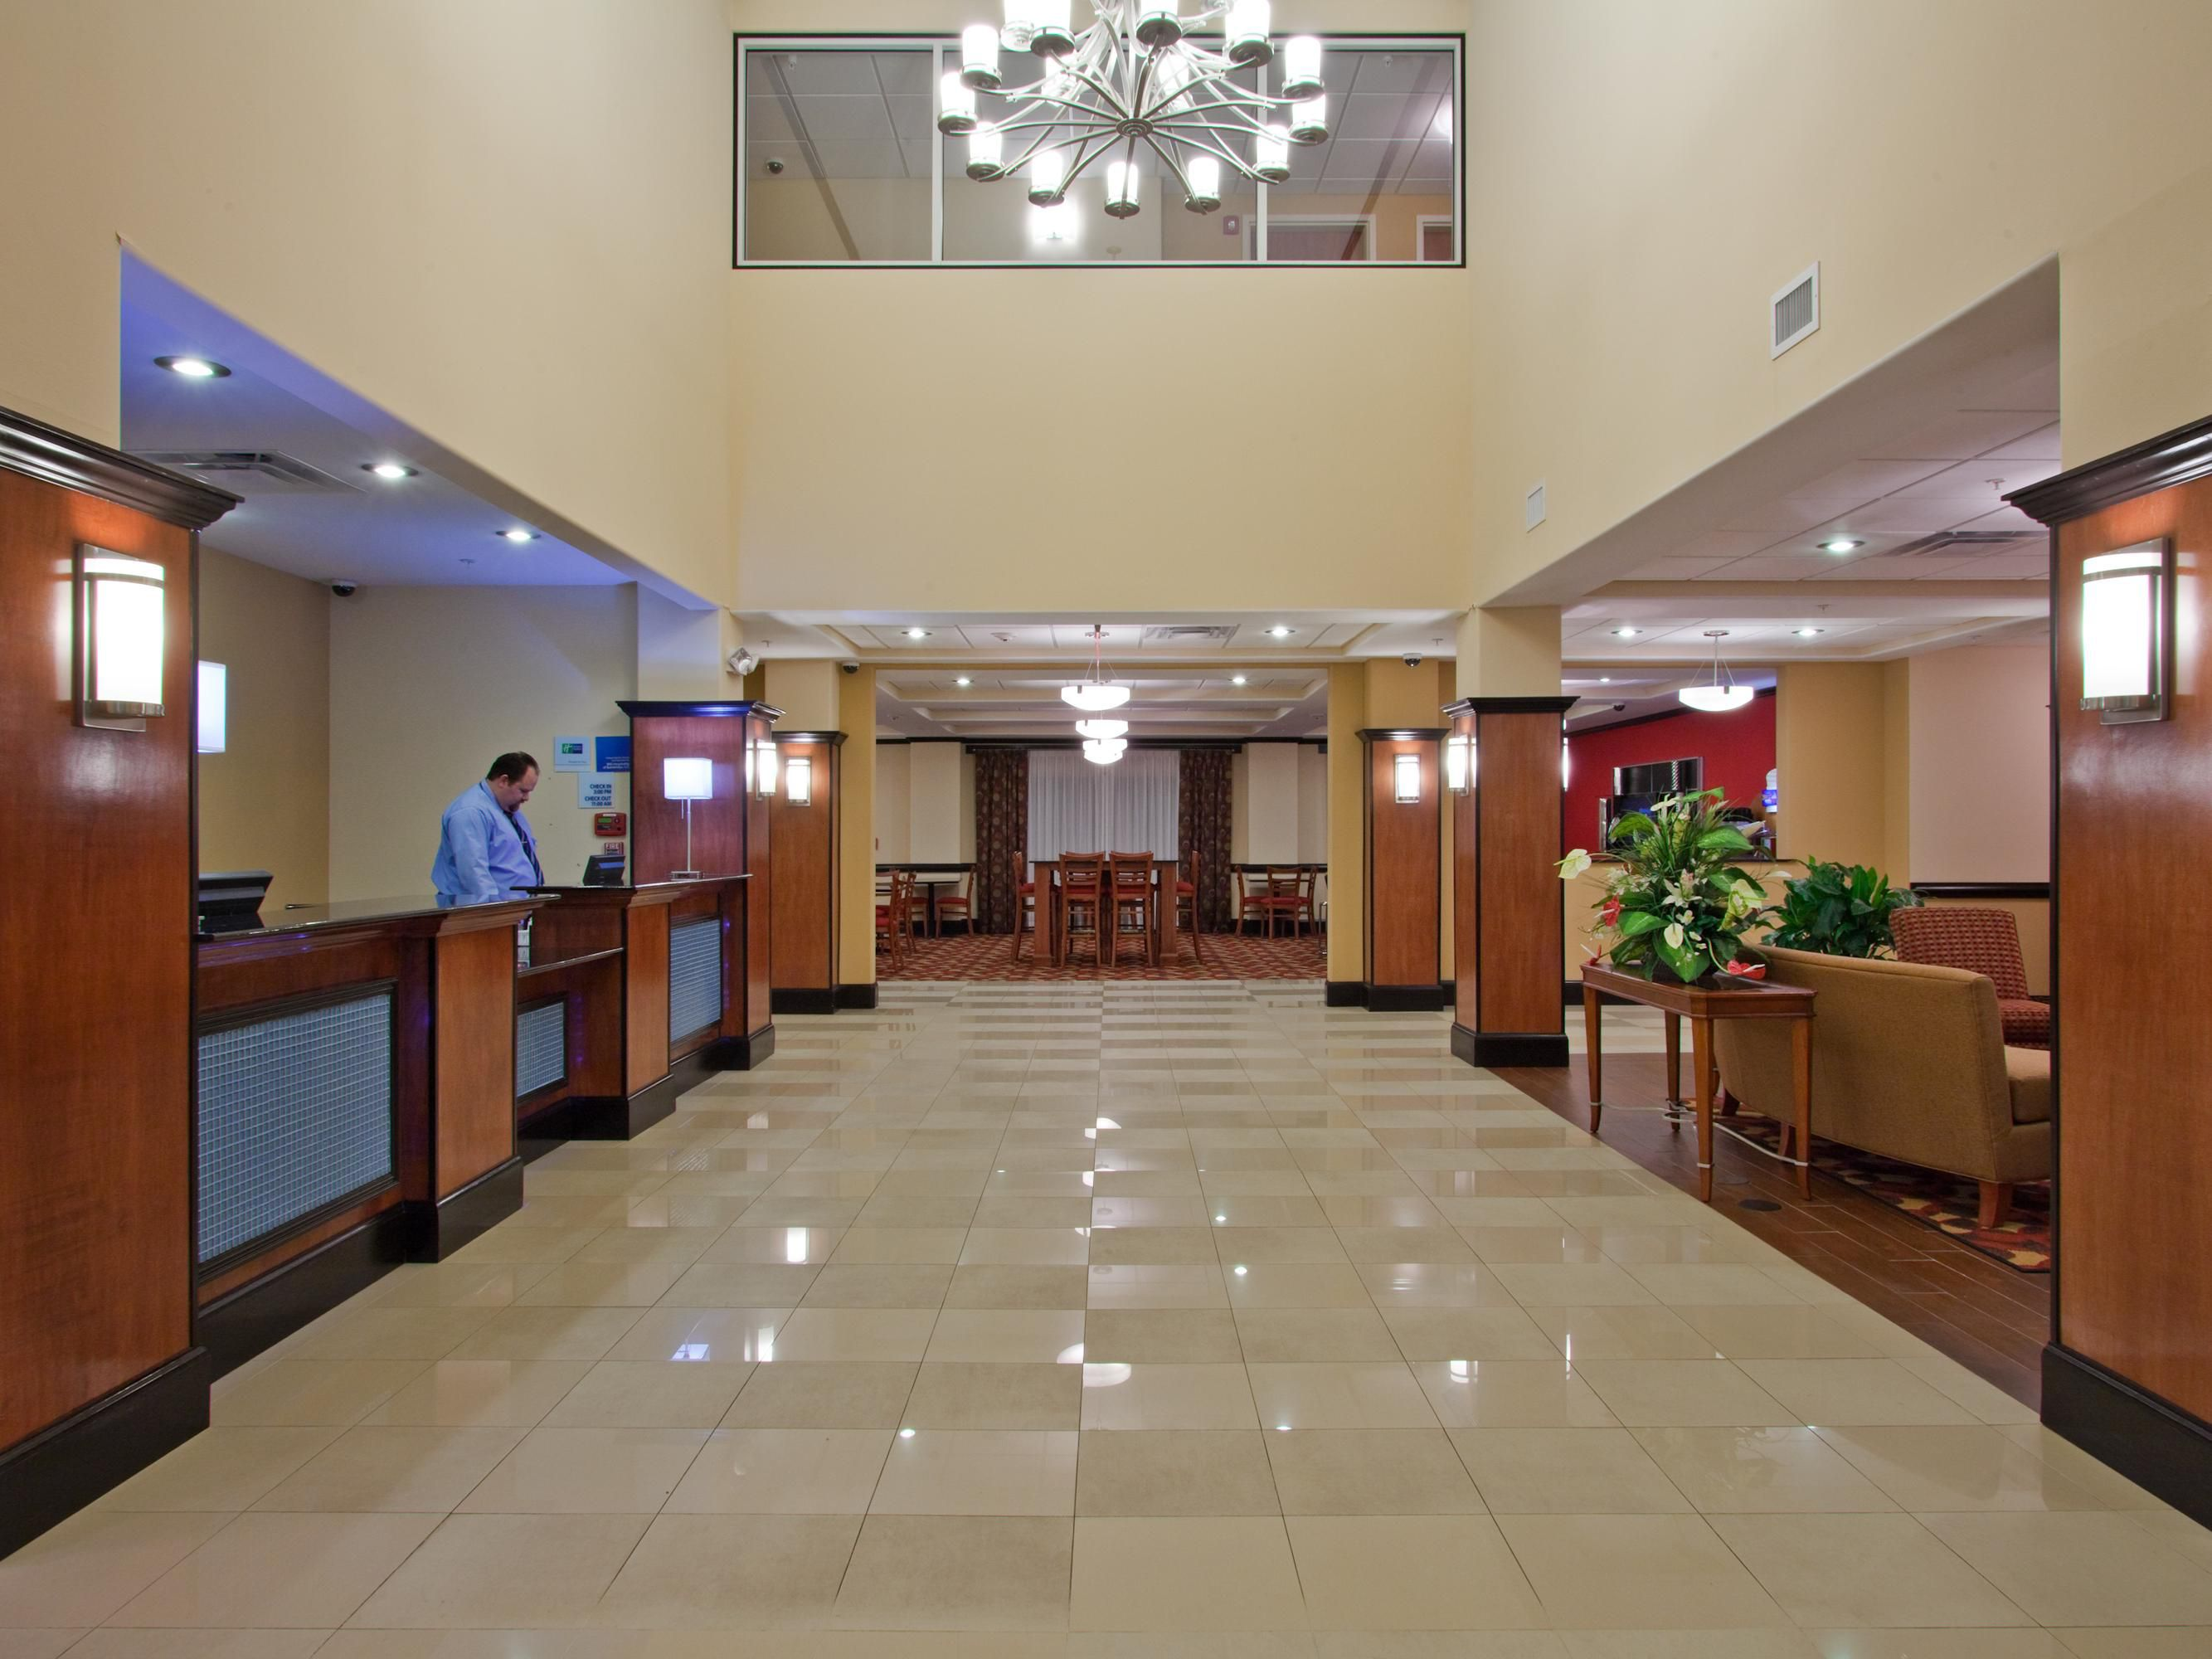 Holiday Inn Express Bainbridge, GA Lobby Entrance